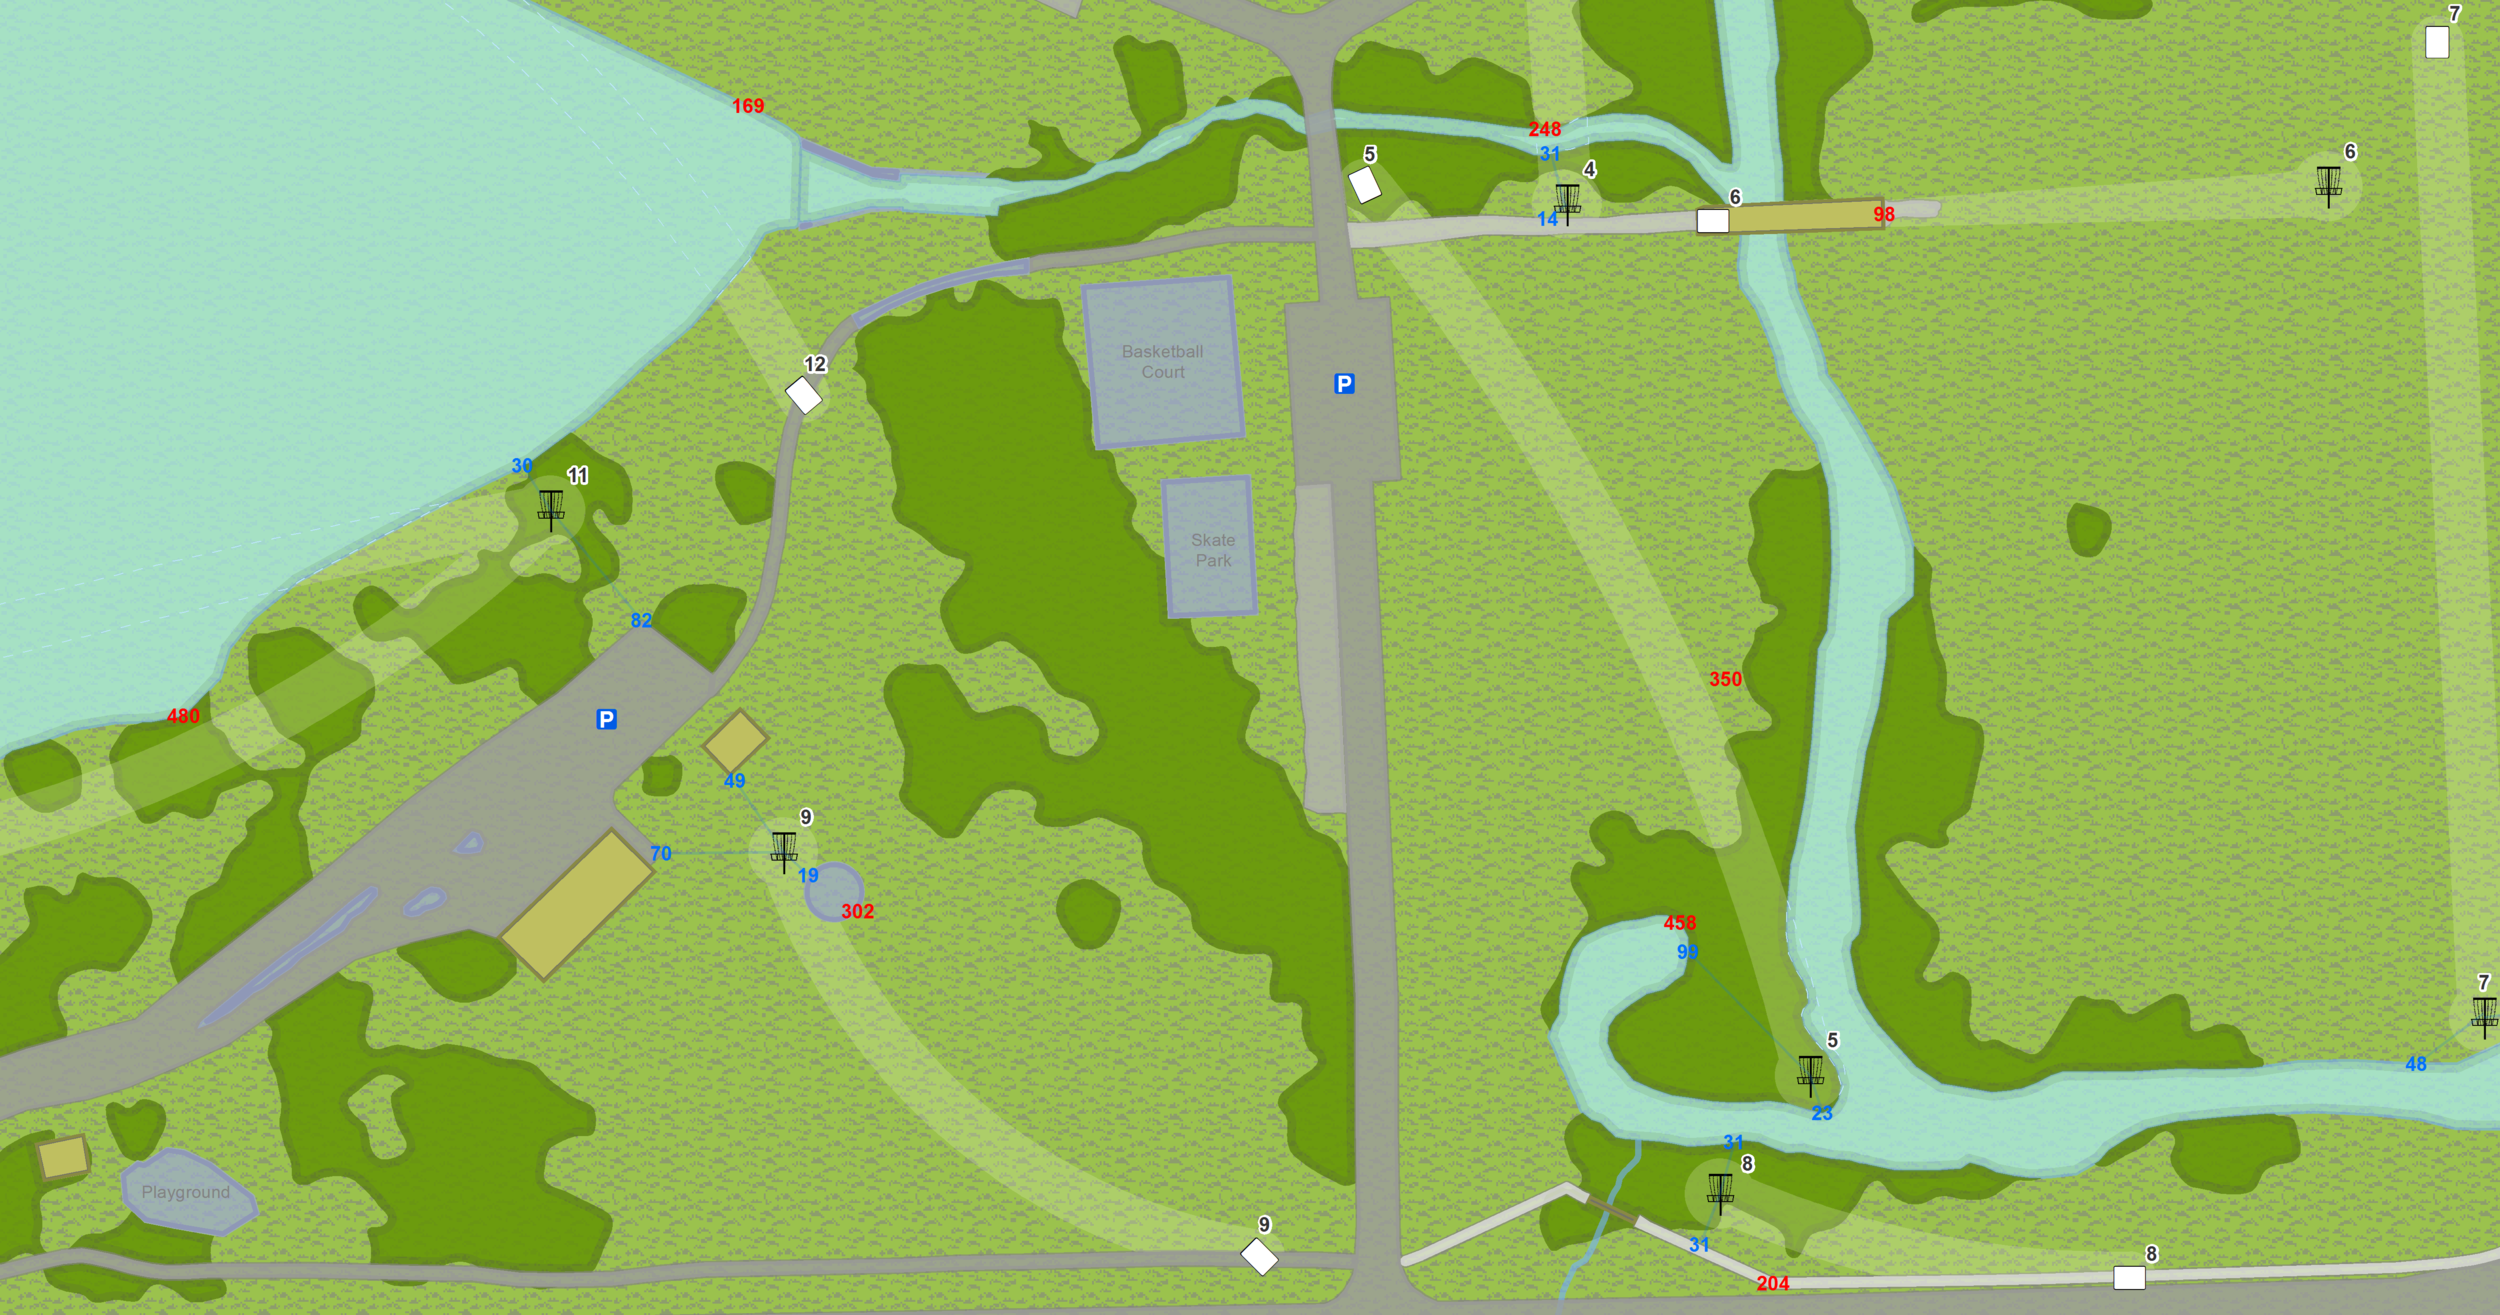 Sneak peak of the temporary course at Eureka Lake Park, Eureka IL